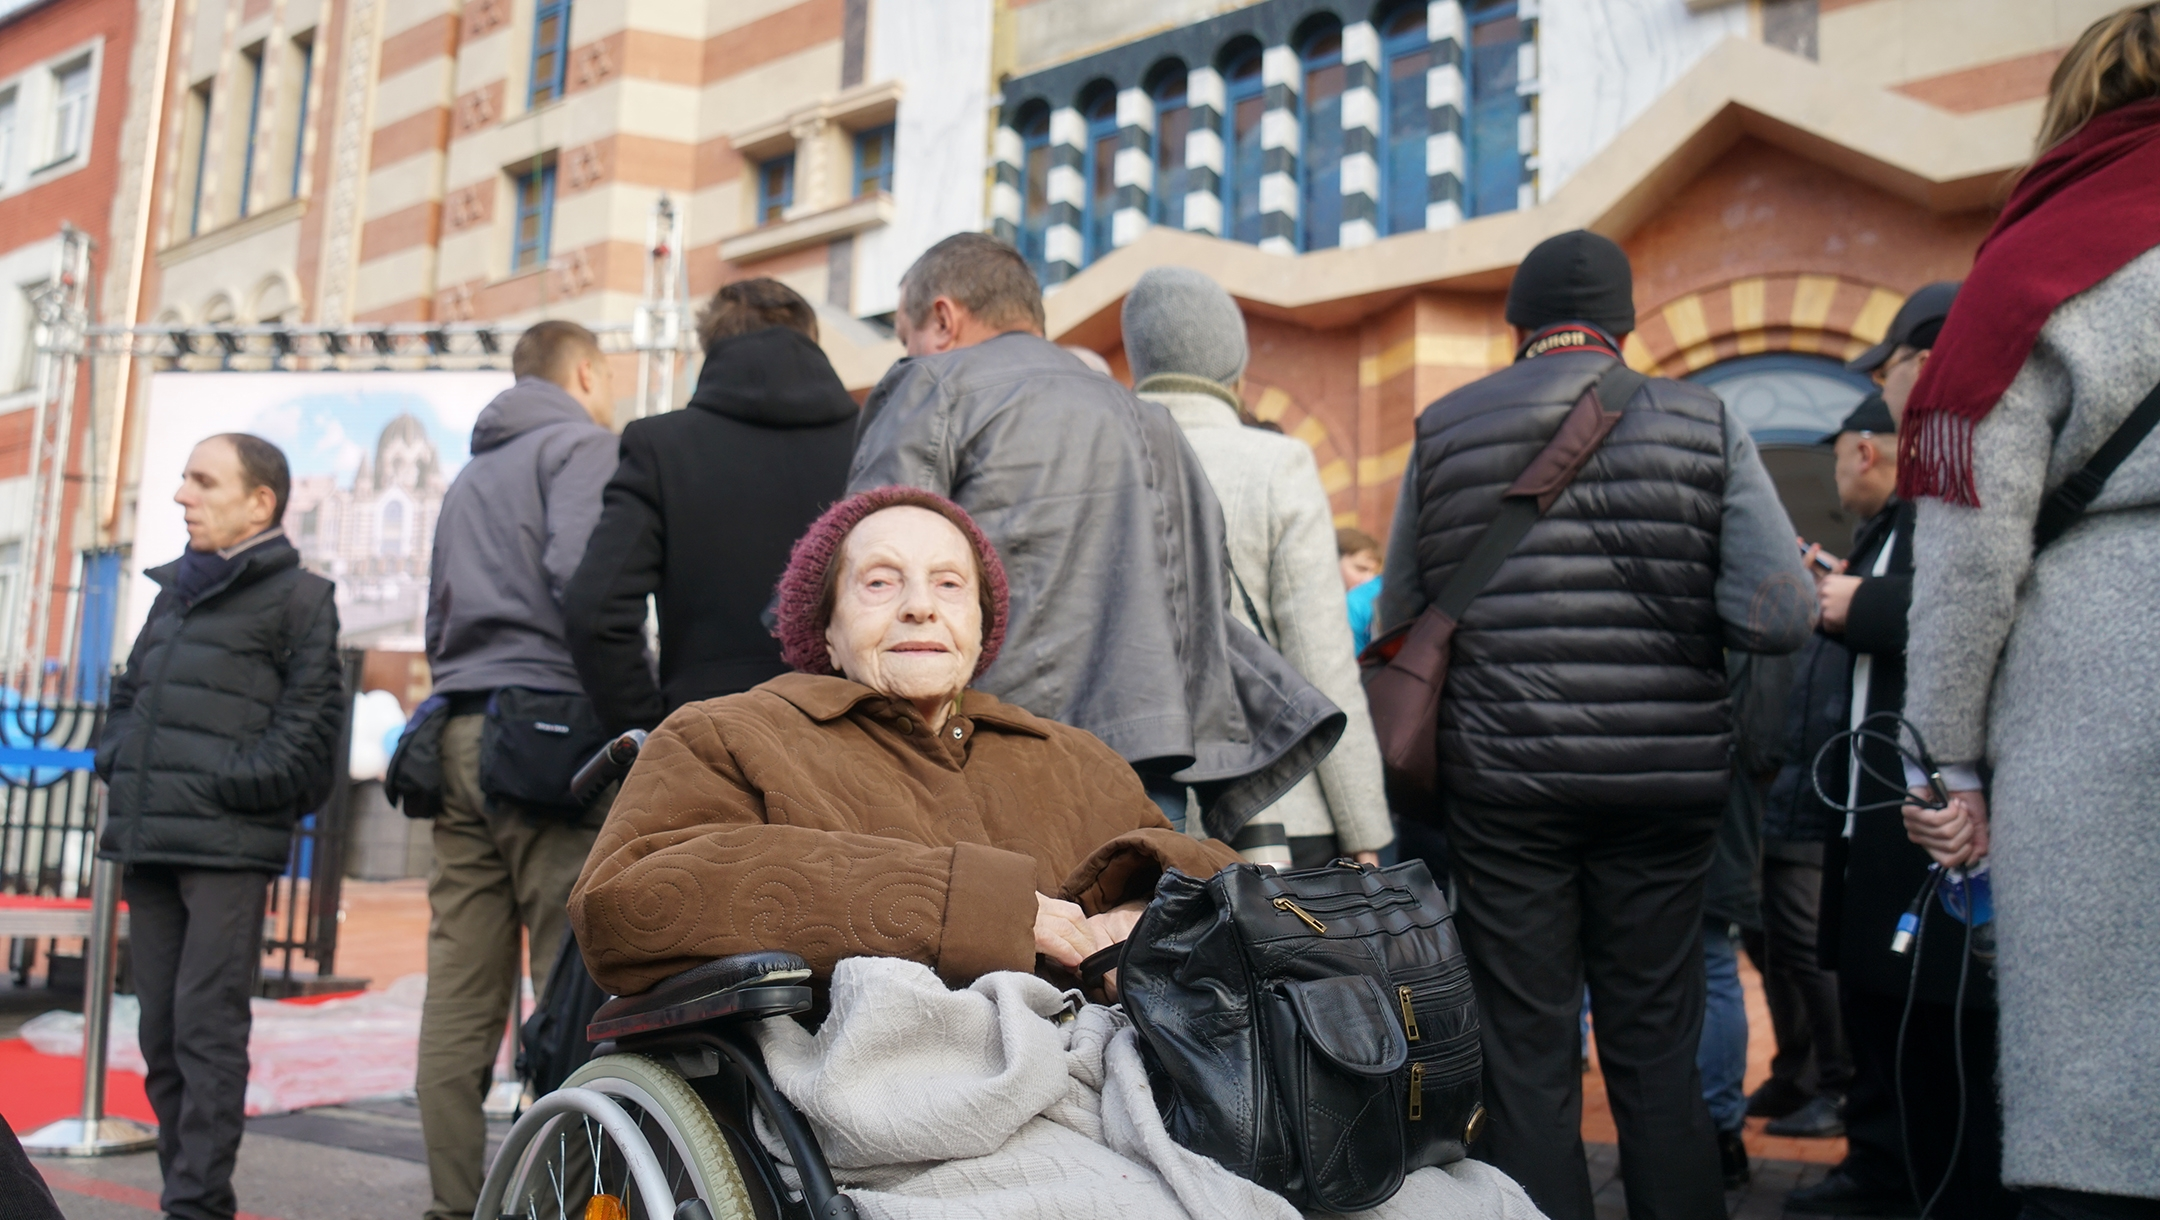 Nehama Drober, 91, waiting to enter the restored synagogue in Kaliningrad, Nov. 8, 2018. (Cnaan Liphshiz)